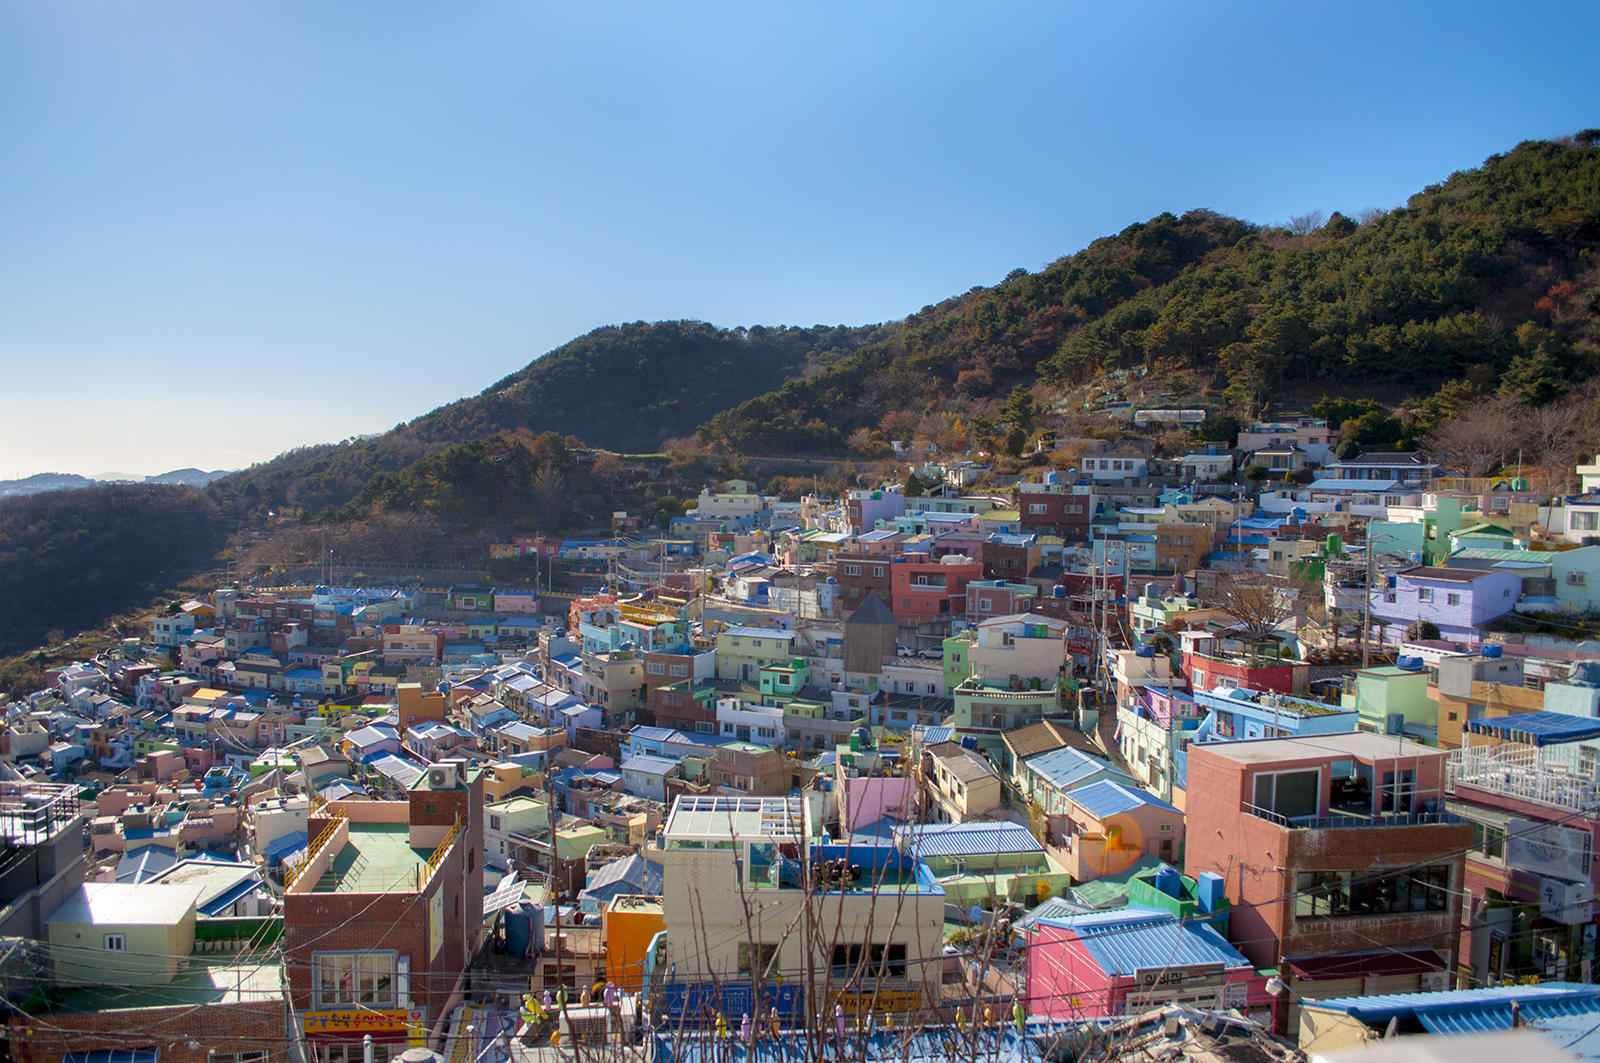 Busan trip: Gamcheon Culture Village, Songdo Skywalk and a Christmas Festival!